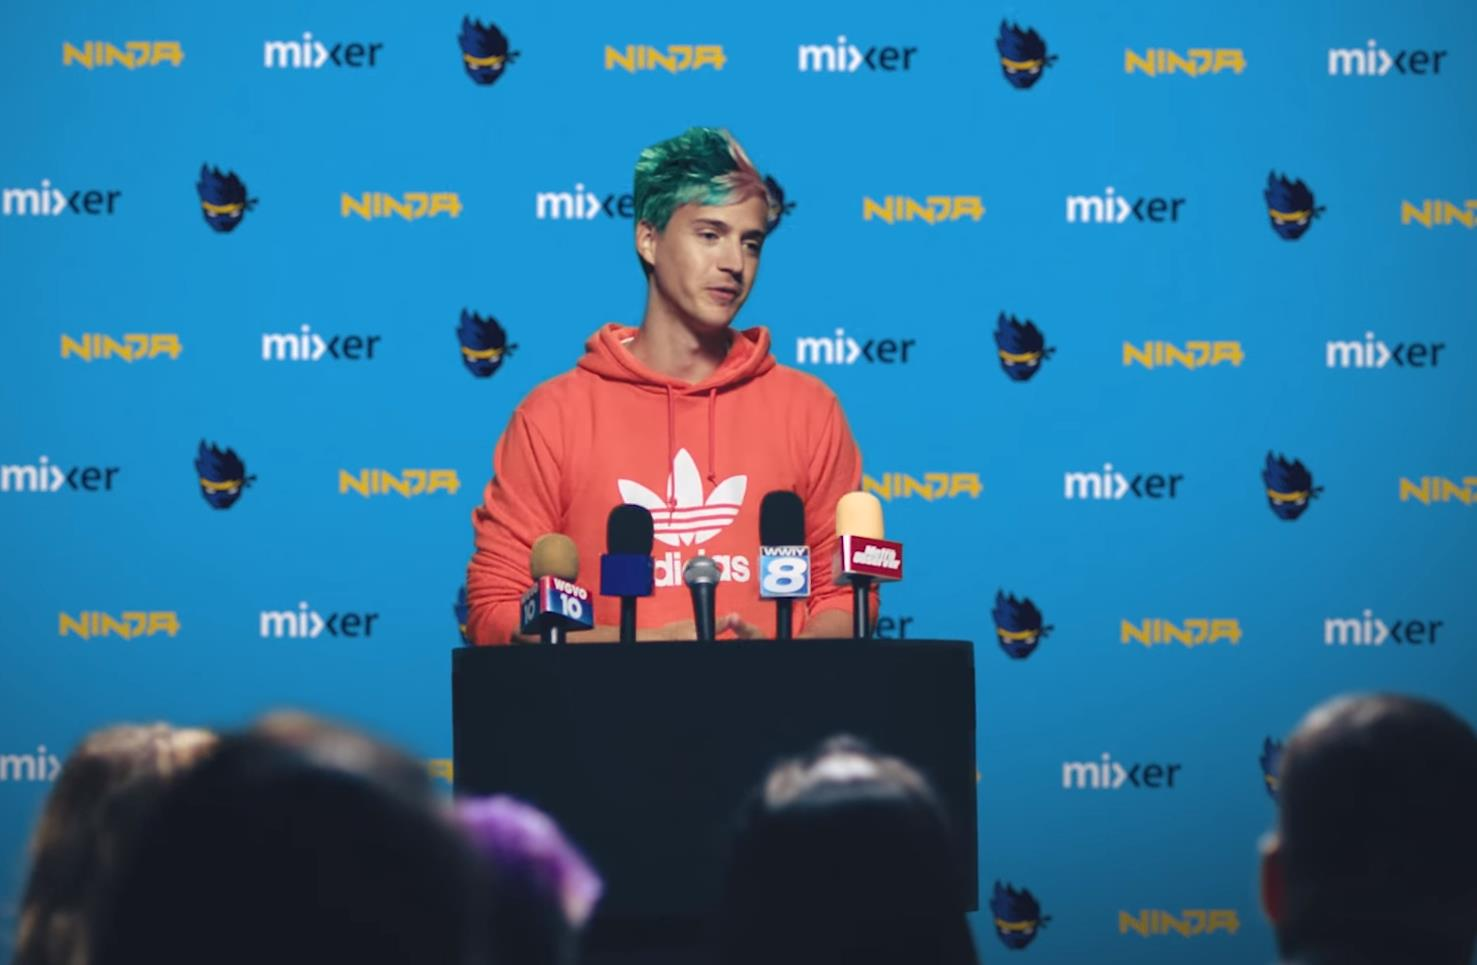 Microsoft Reportedly Paid $50 Million+ To Ninja To Stream Exclusively On Mixer